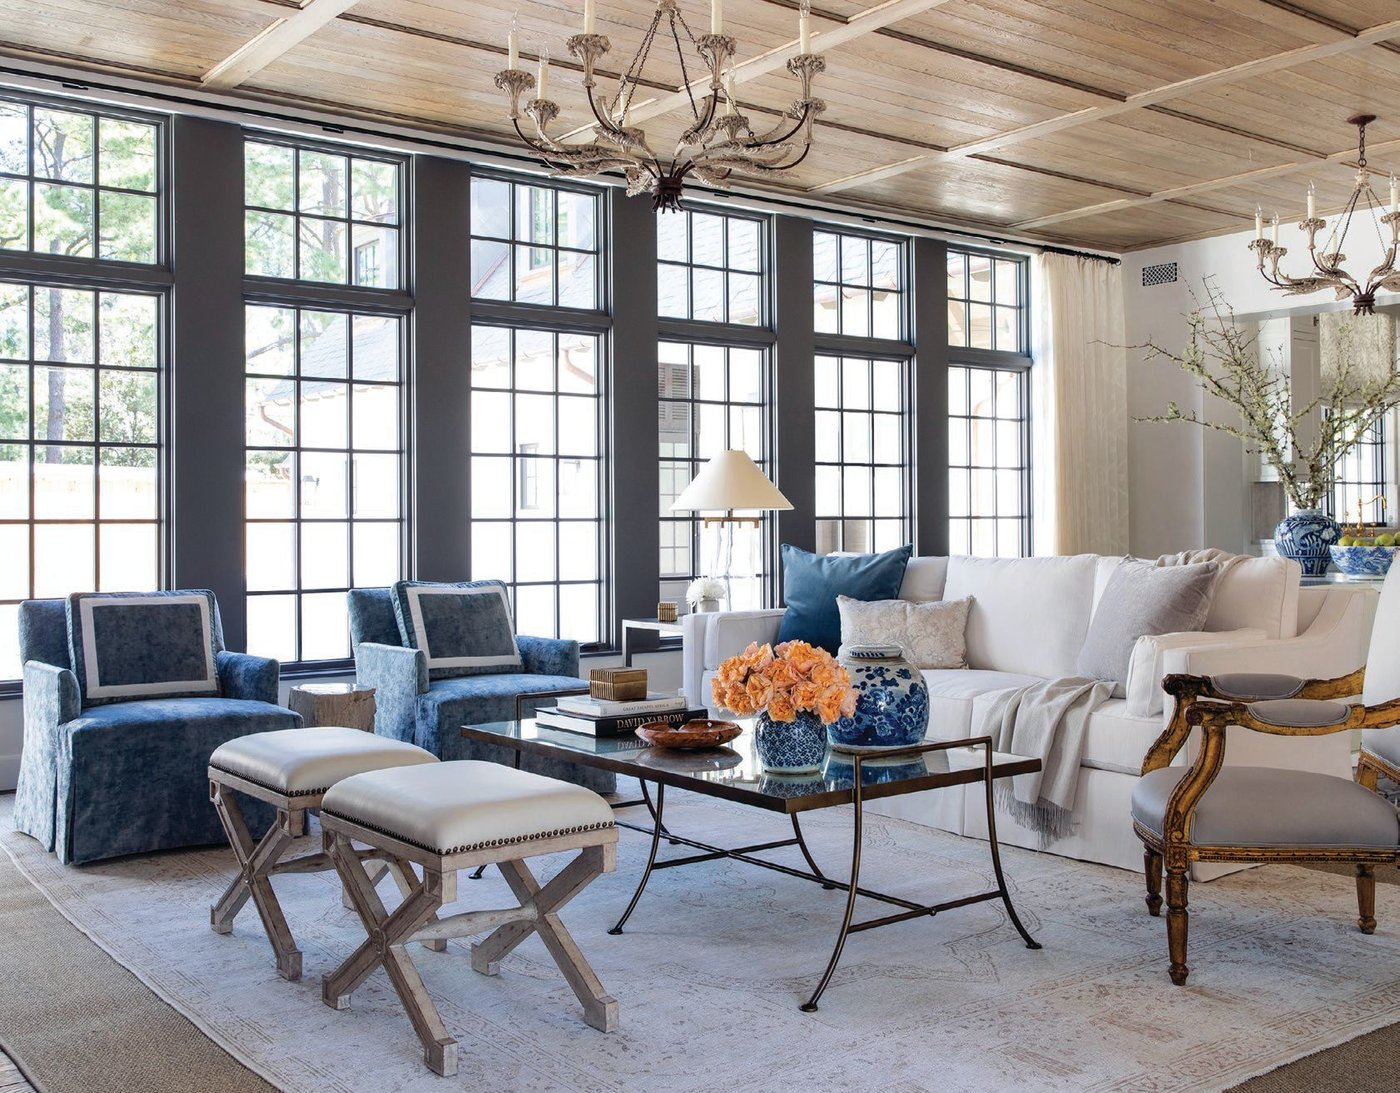 George Cameron Nash's Park Avenue sofa anchors the living room, with Bungalow Classic ottomans and Lee Industries skirted swivel chairs rounding out the mix PHOTOGRAPHED BY JULIE SOEFER